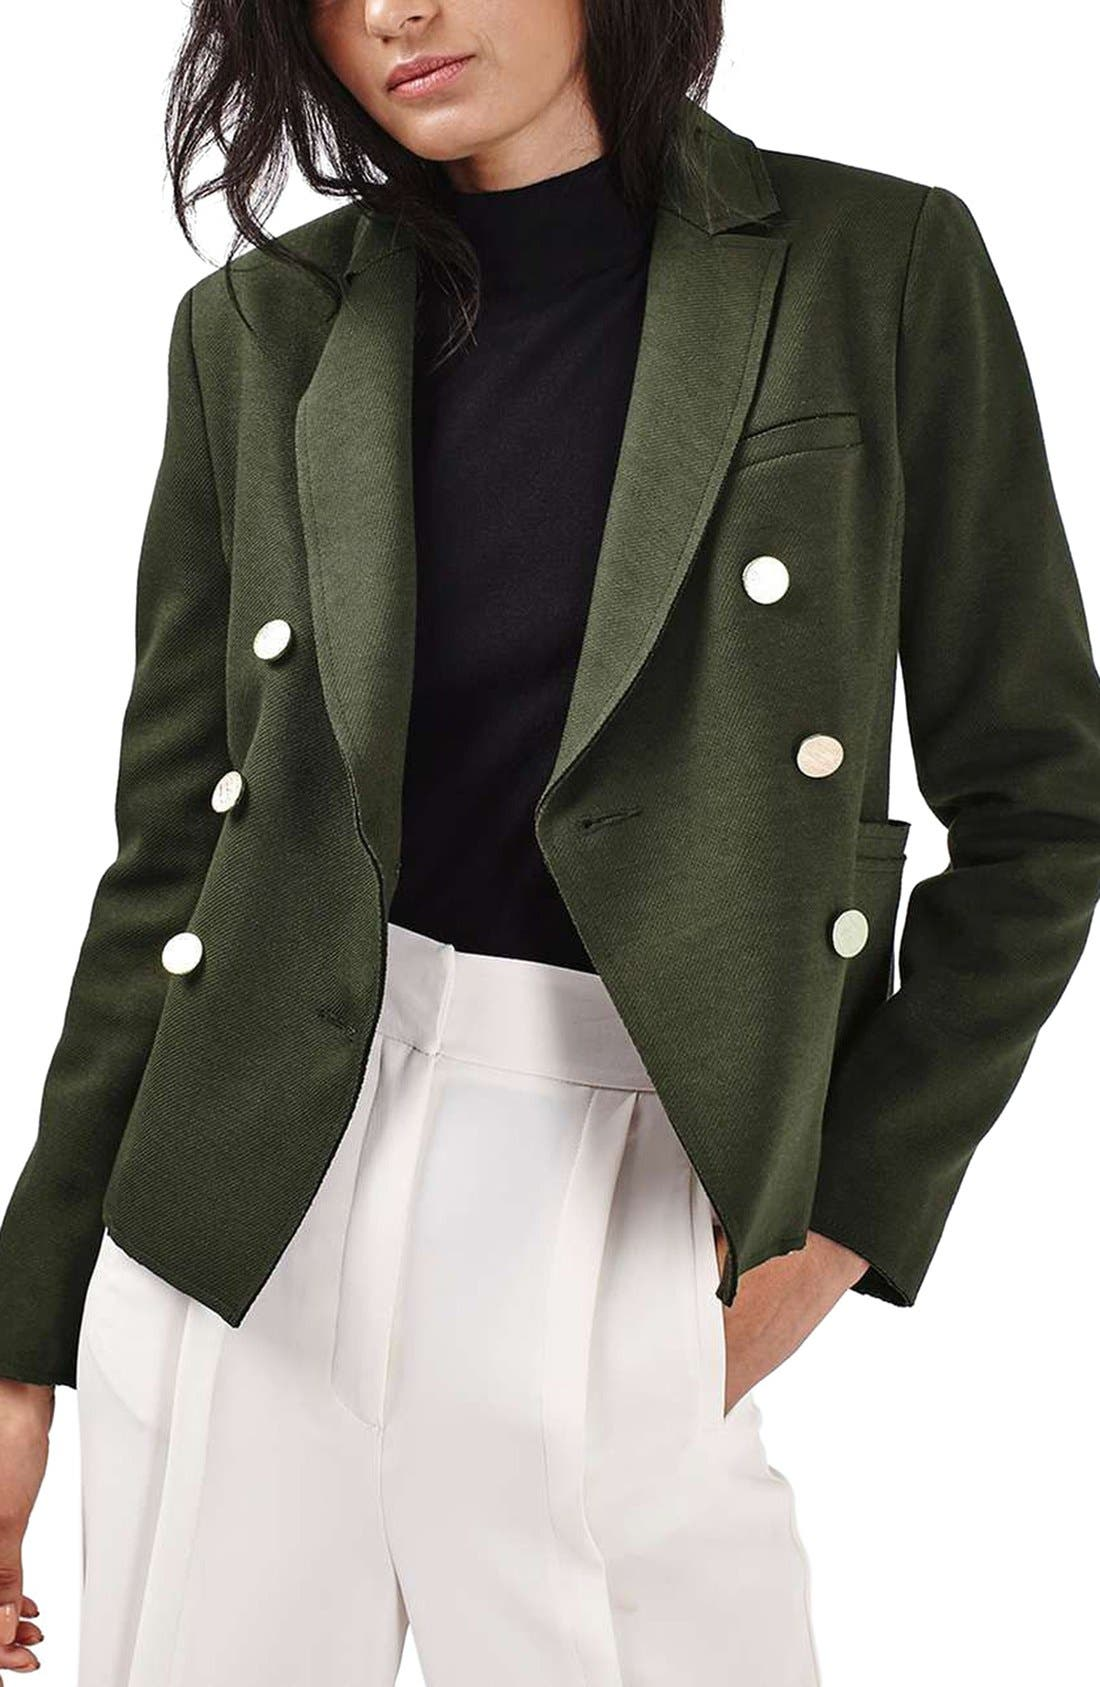 Gold Button Double Breasted Blazer,                             Main thumbnail 1, color,                             Green